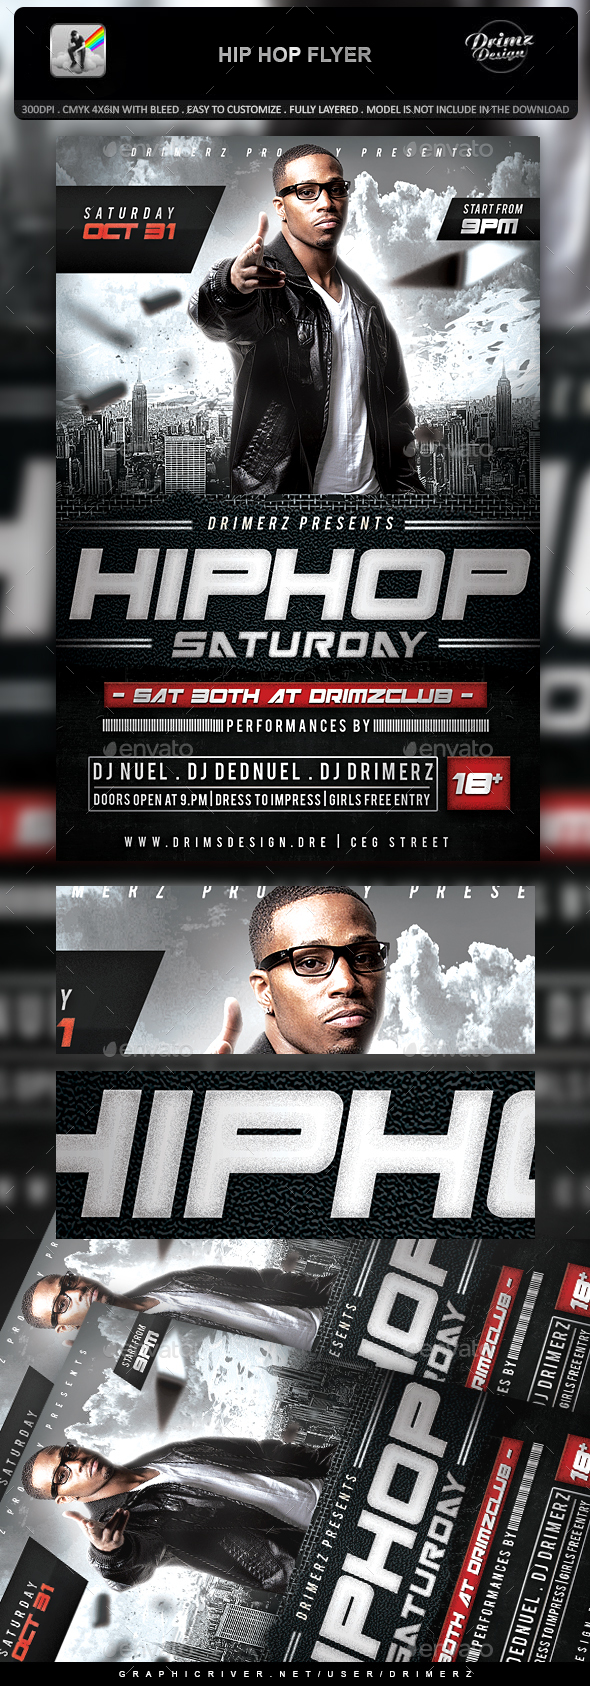 Hip Hop Flyer - Events Flyers